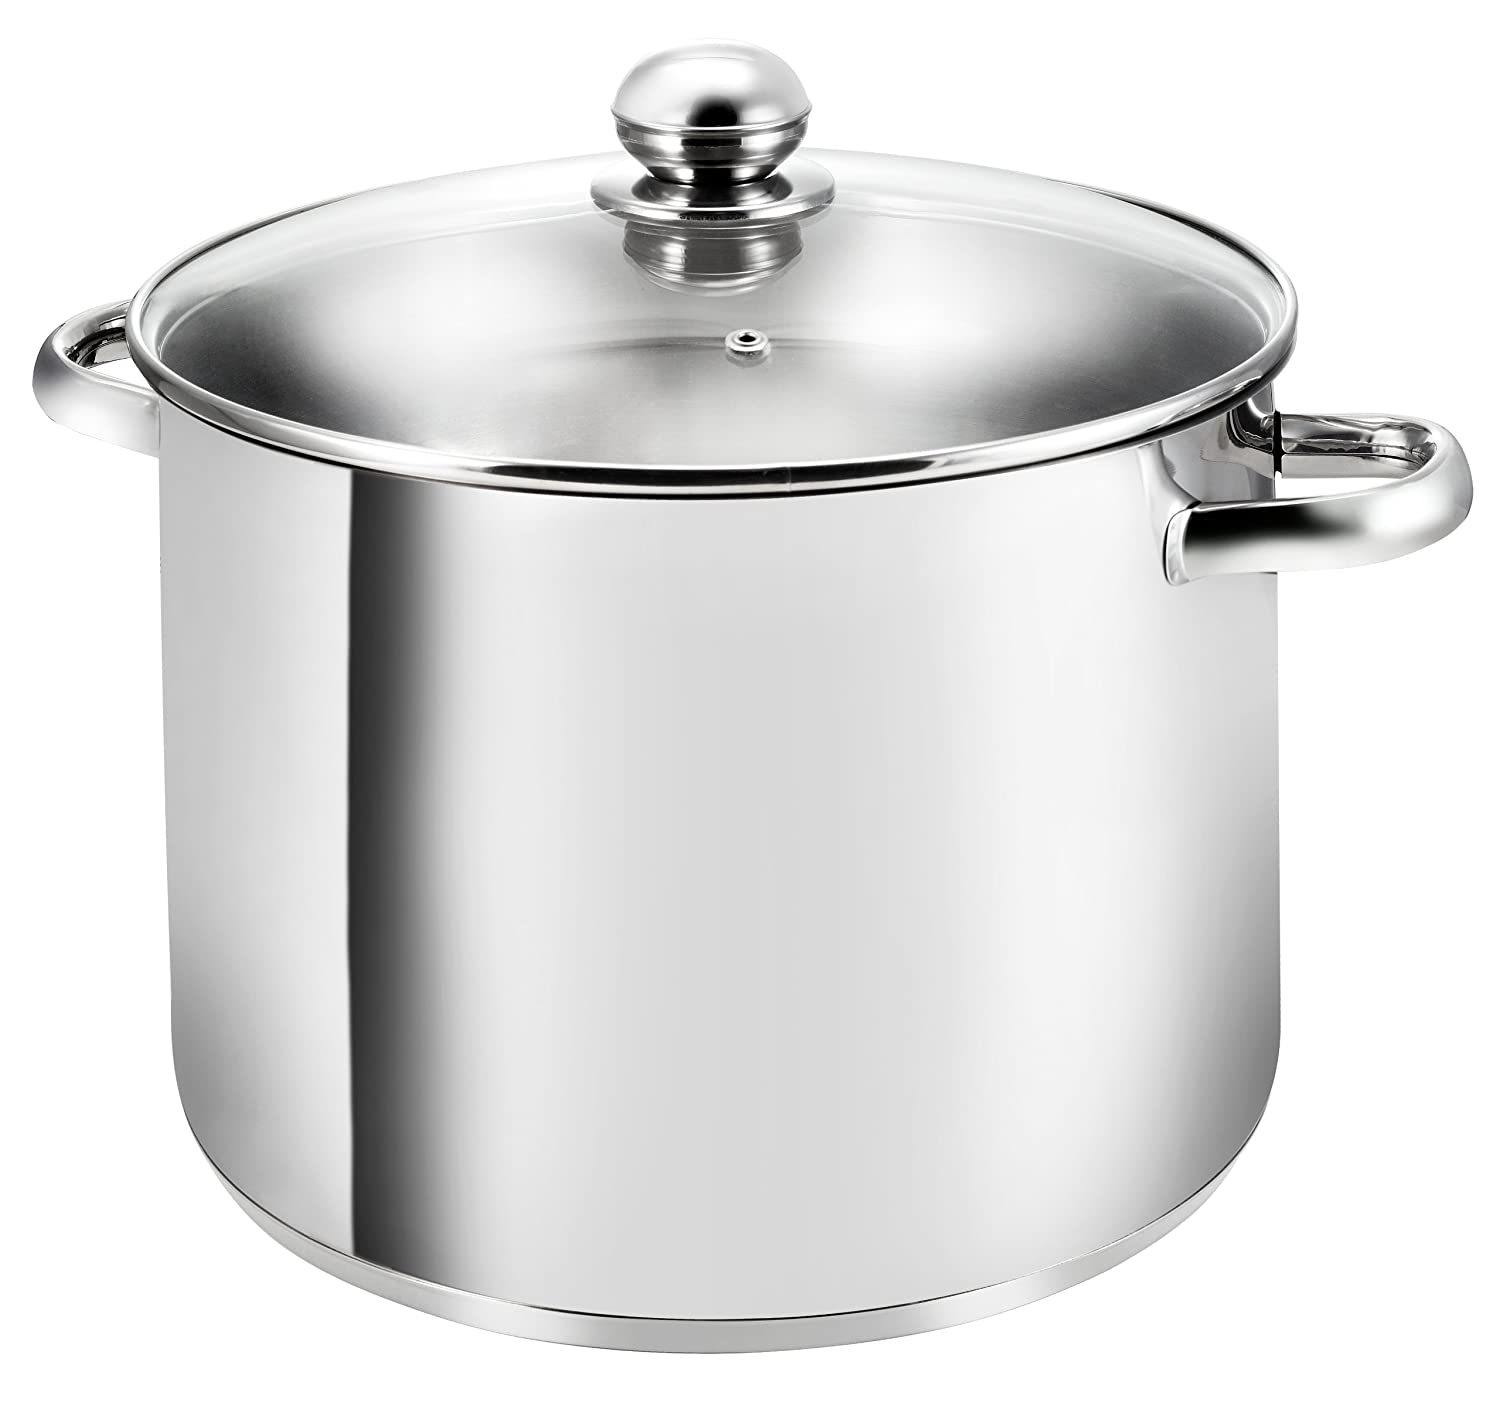 Kopf Gigant Large Cooking Pot with Glass Lid, Stainless Steel, Diameter 28 cm, Height 21 cm, 12.5 Litre 122463